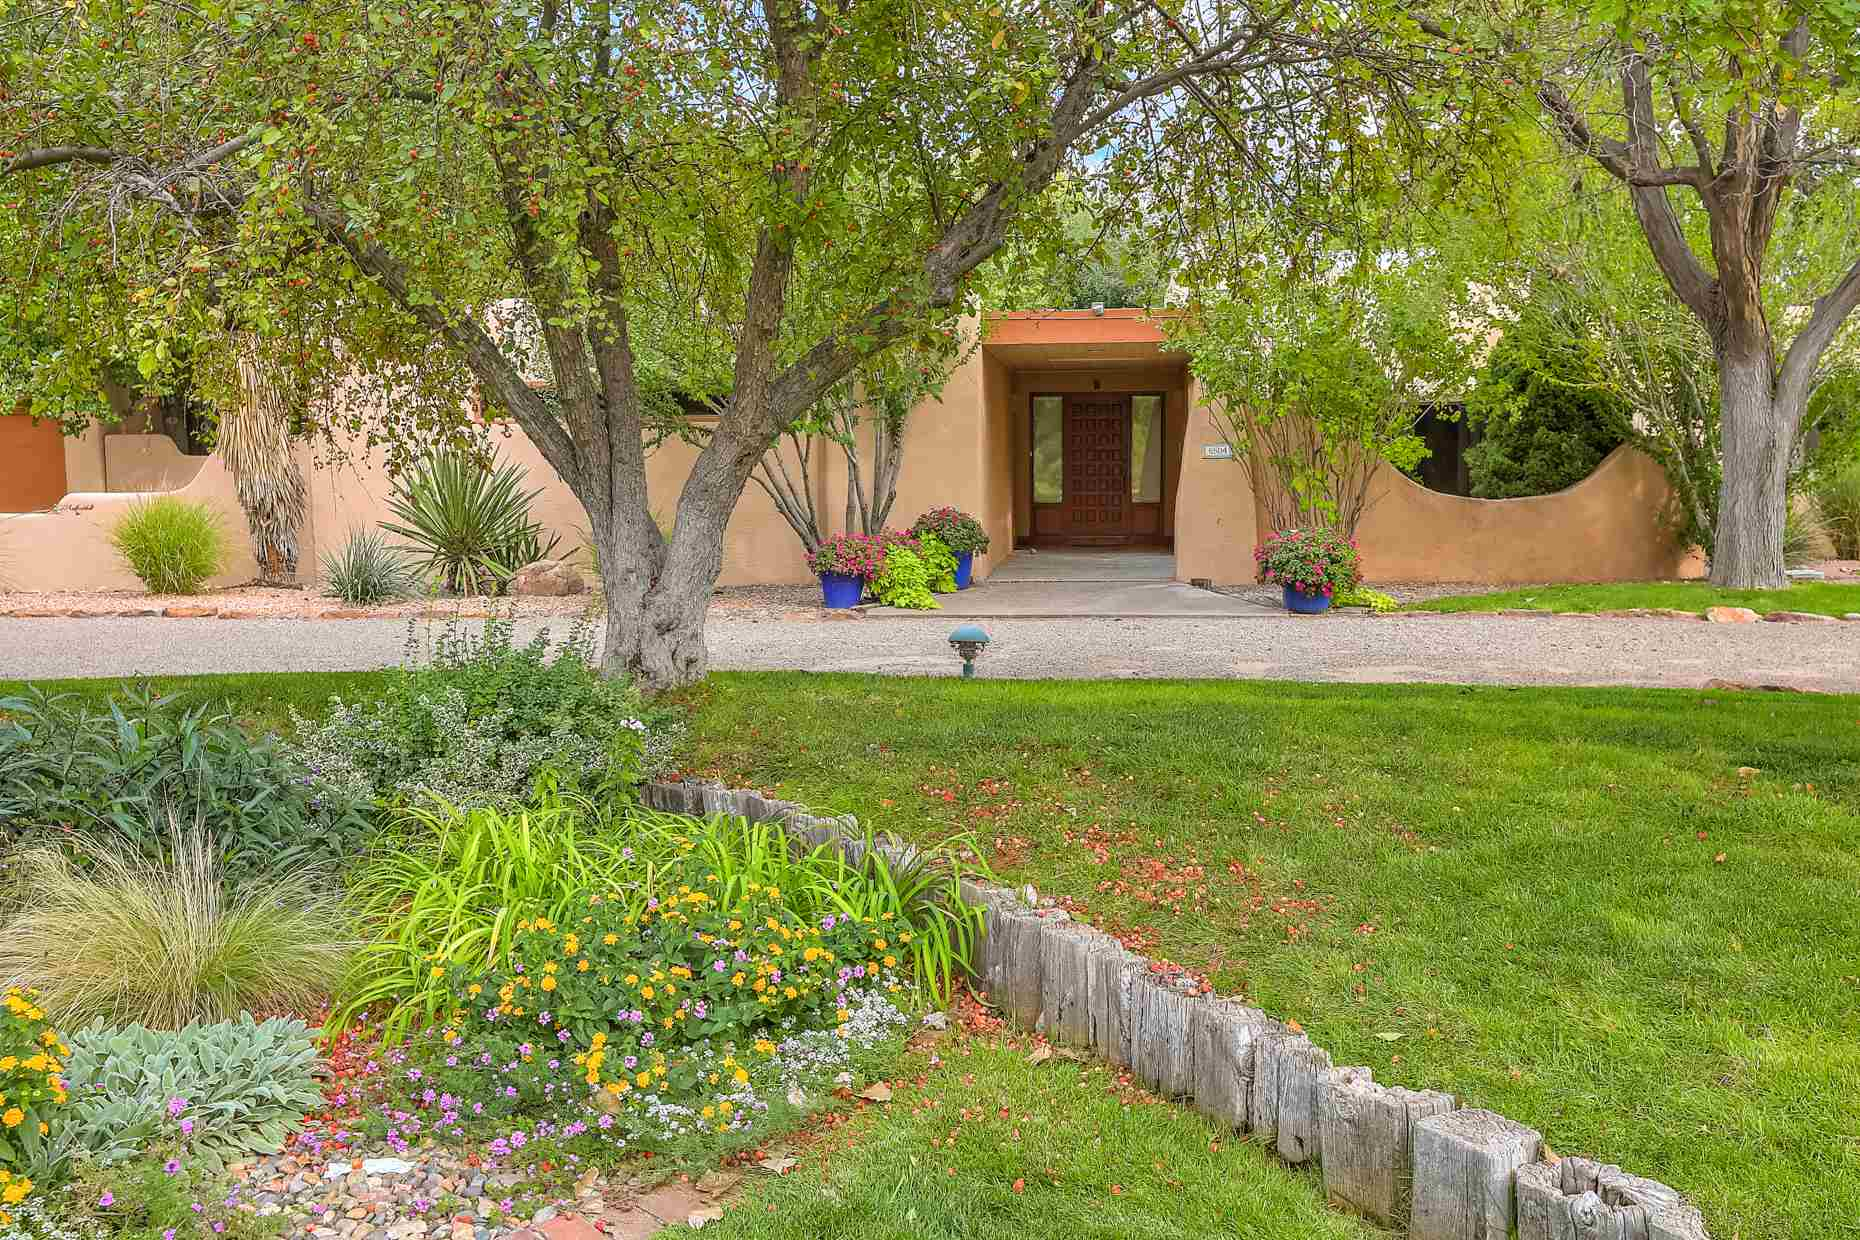 Rare find in this special pueblo revival home in the coveted El Caballero Ranchitos neighborhood in the verdant North Valley. Lush landscaping and a tree-lined acreage lead into a gracious courtyard and gallery entry. Options for living and entertaining include a formal living room with fireplace, dining room and a splendid large family room with fireplace, bookcases and a private patio. Gather around the center island in the updated kitchen which features granite and SS appliances. The master suite has a closet to die for! Adjacent to the master is a very large office/studio with a separate entrance. There is lots of space in the four additional bedrooms. A gathering area for meals or relaxation and conversation is the light center atrium. Sweet guest house with BR, BTH, FP & garage.